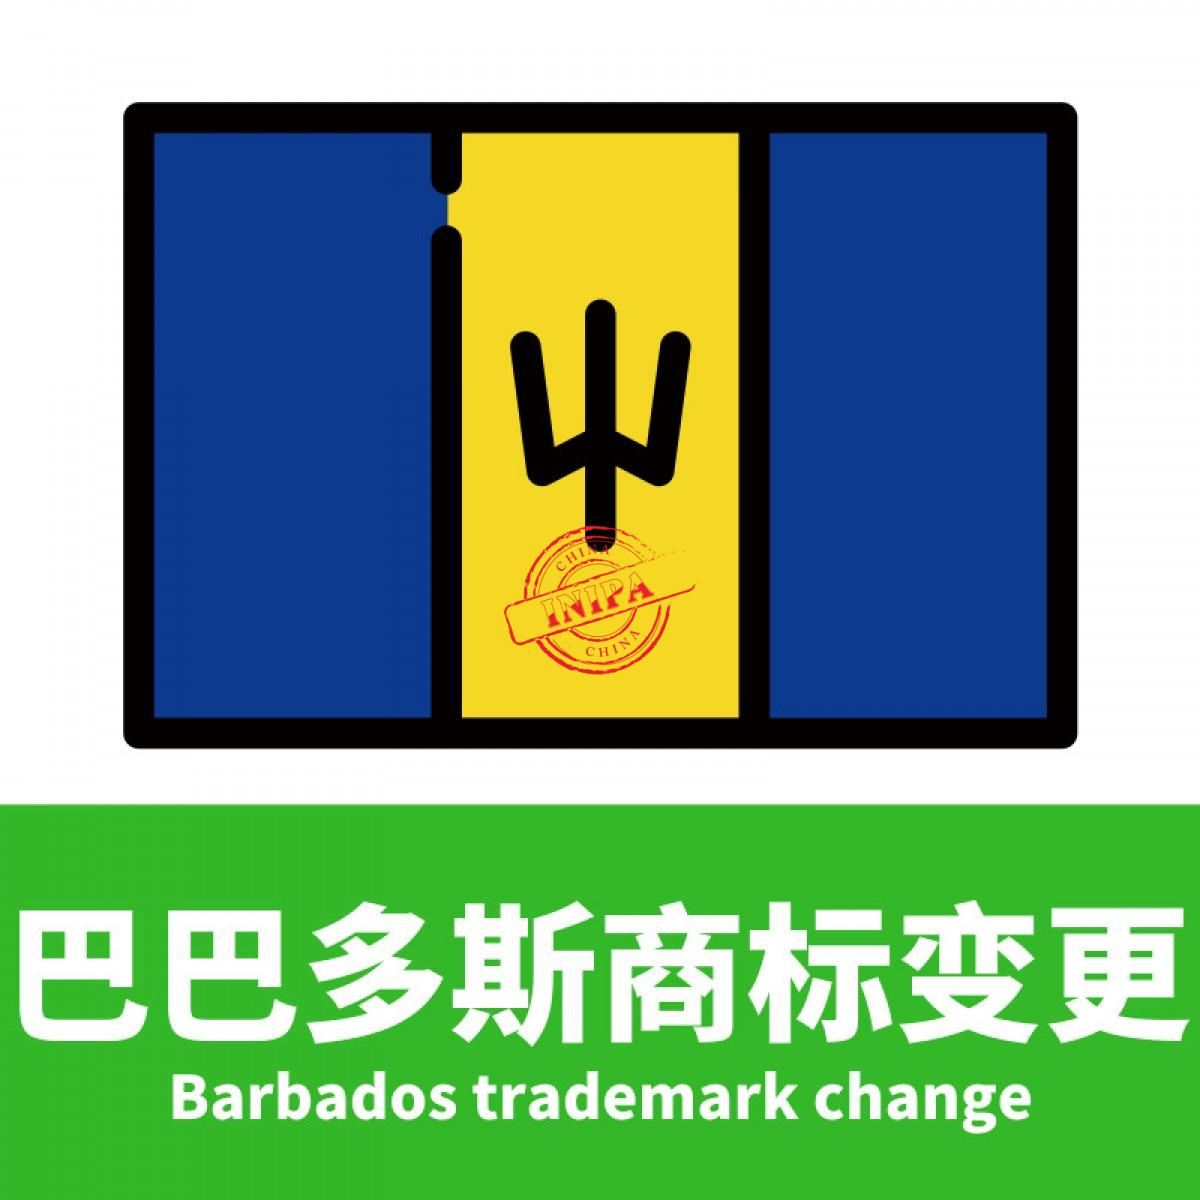 巴巴多斯商标变更/Barbados trademark change